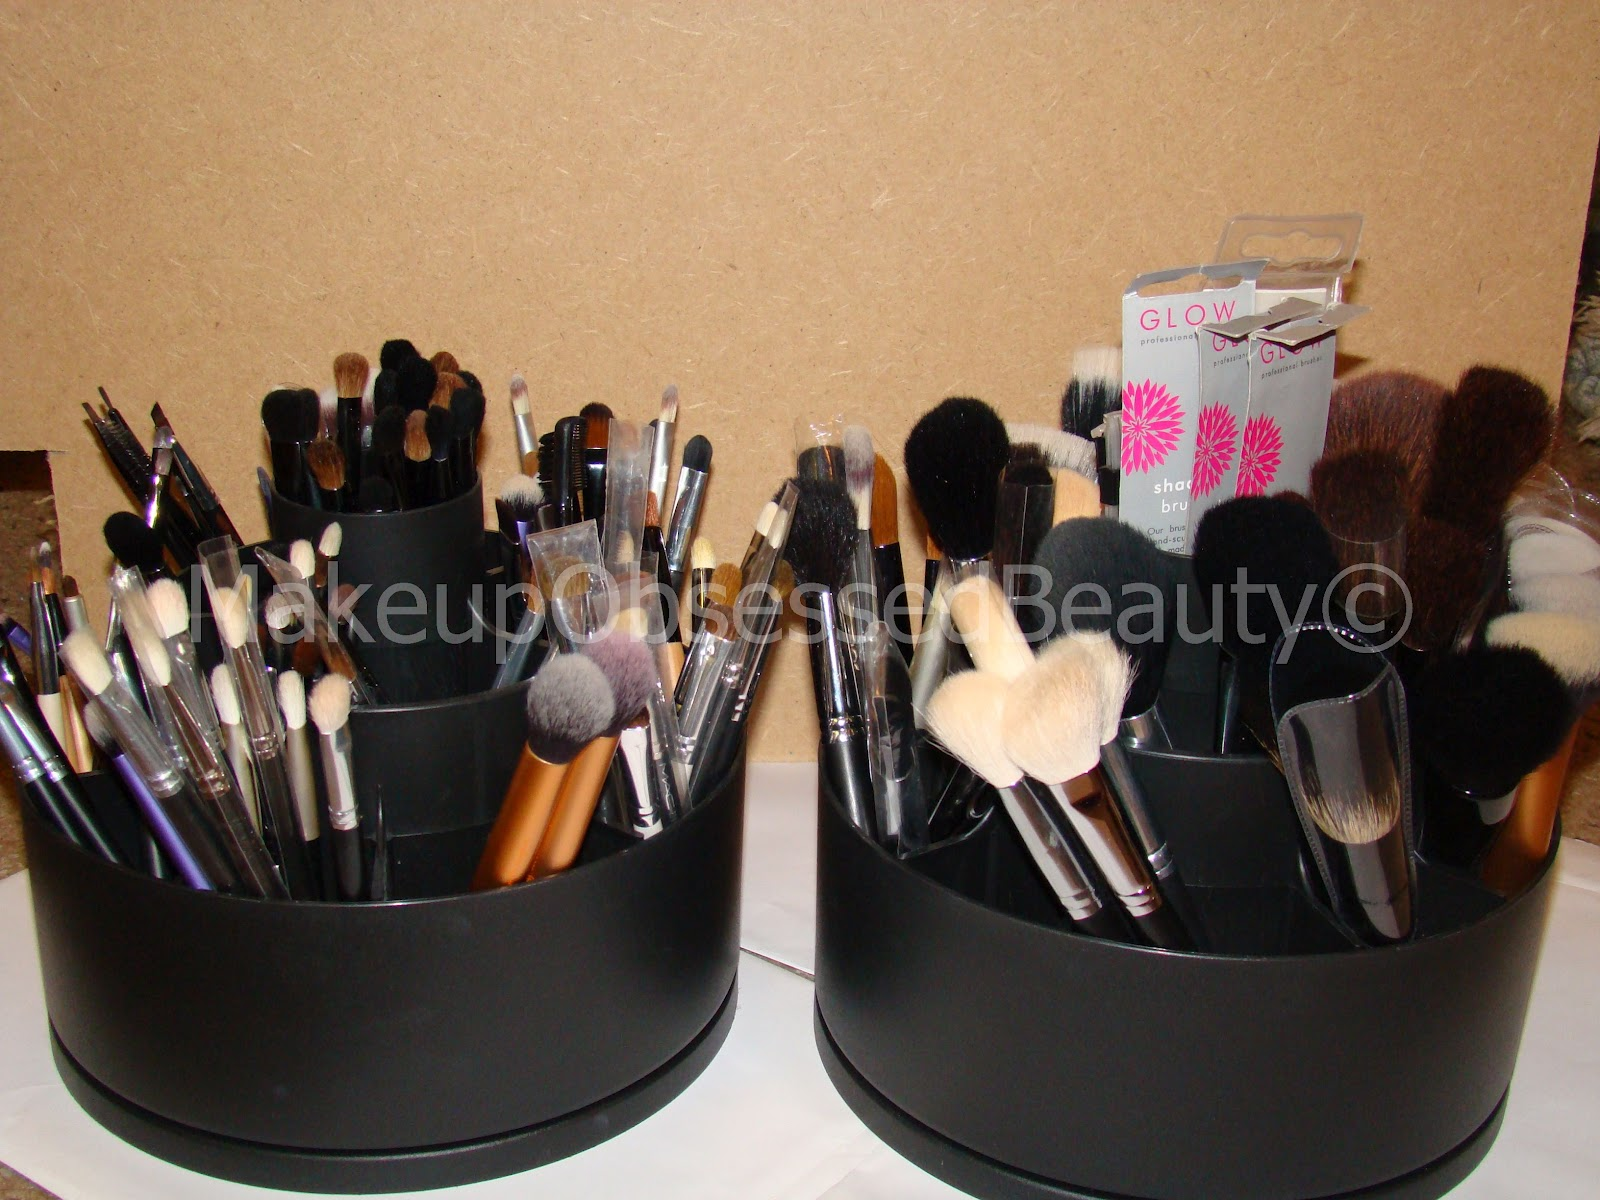 How i Store my Makeup Brushes